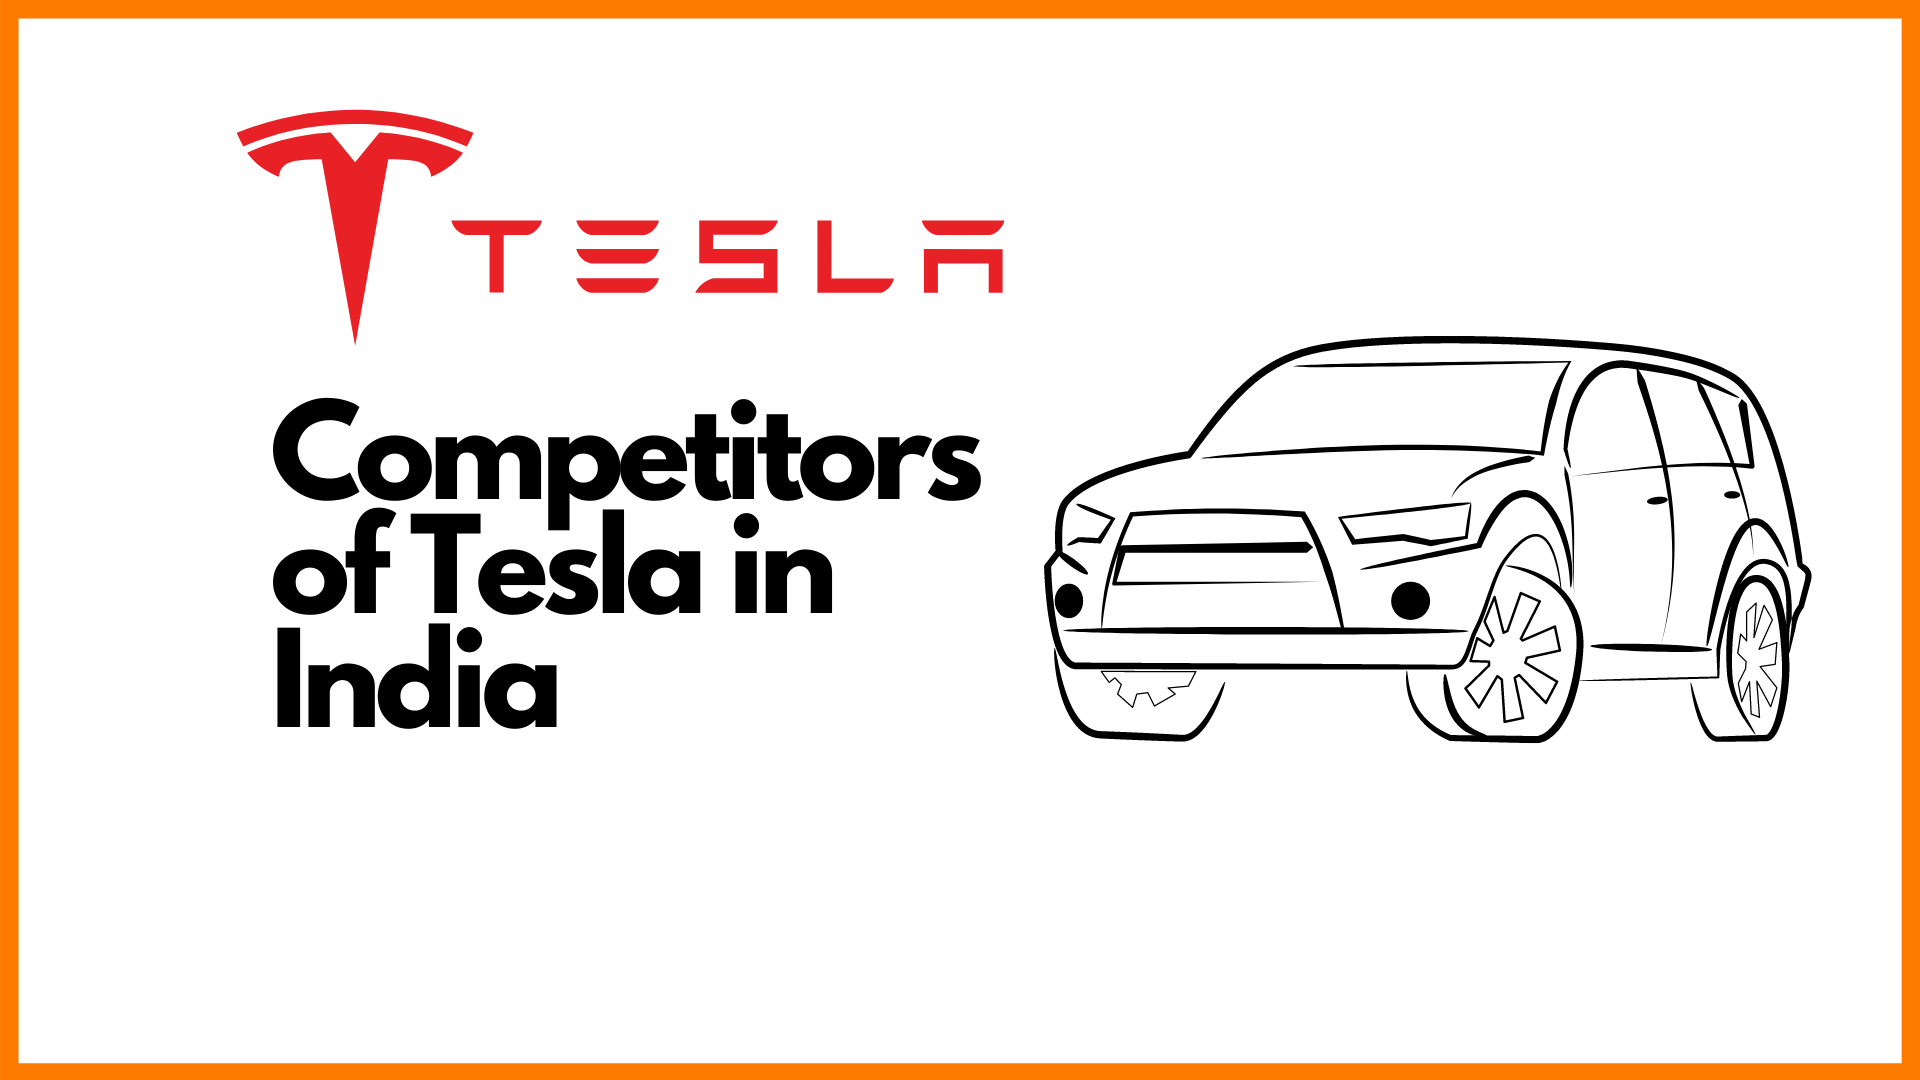 Competitors of Tesla in India